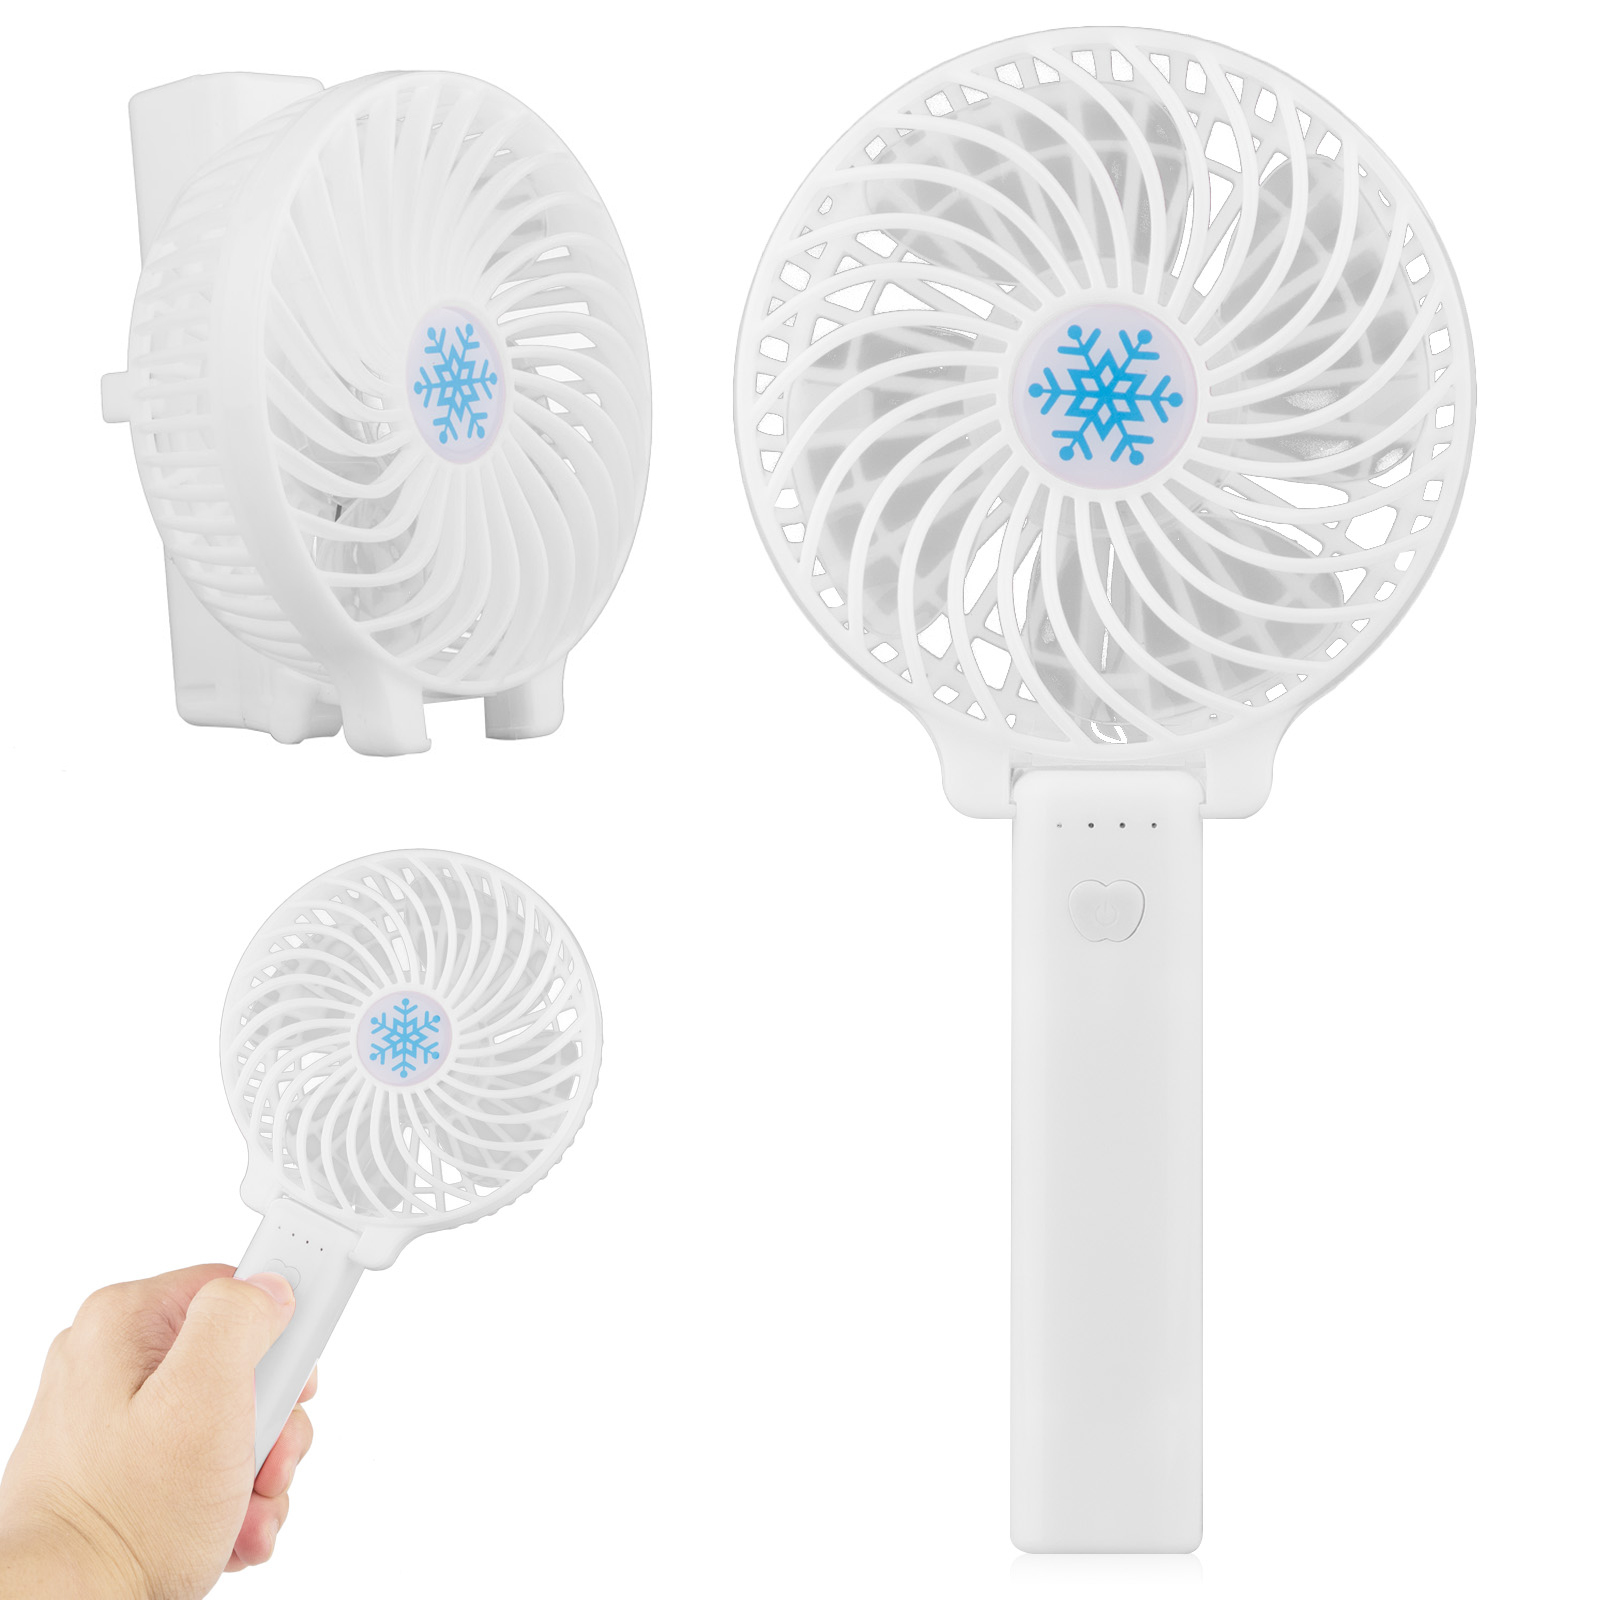 Mini Handheld Fan, with USB Rechargeable Battery, Foldable Personal Portable Desktop Table Cooling... by EEEKit